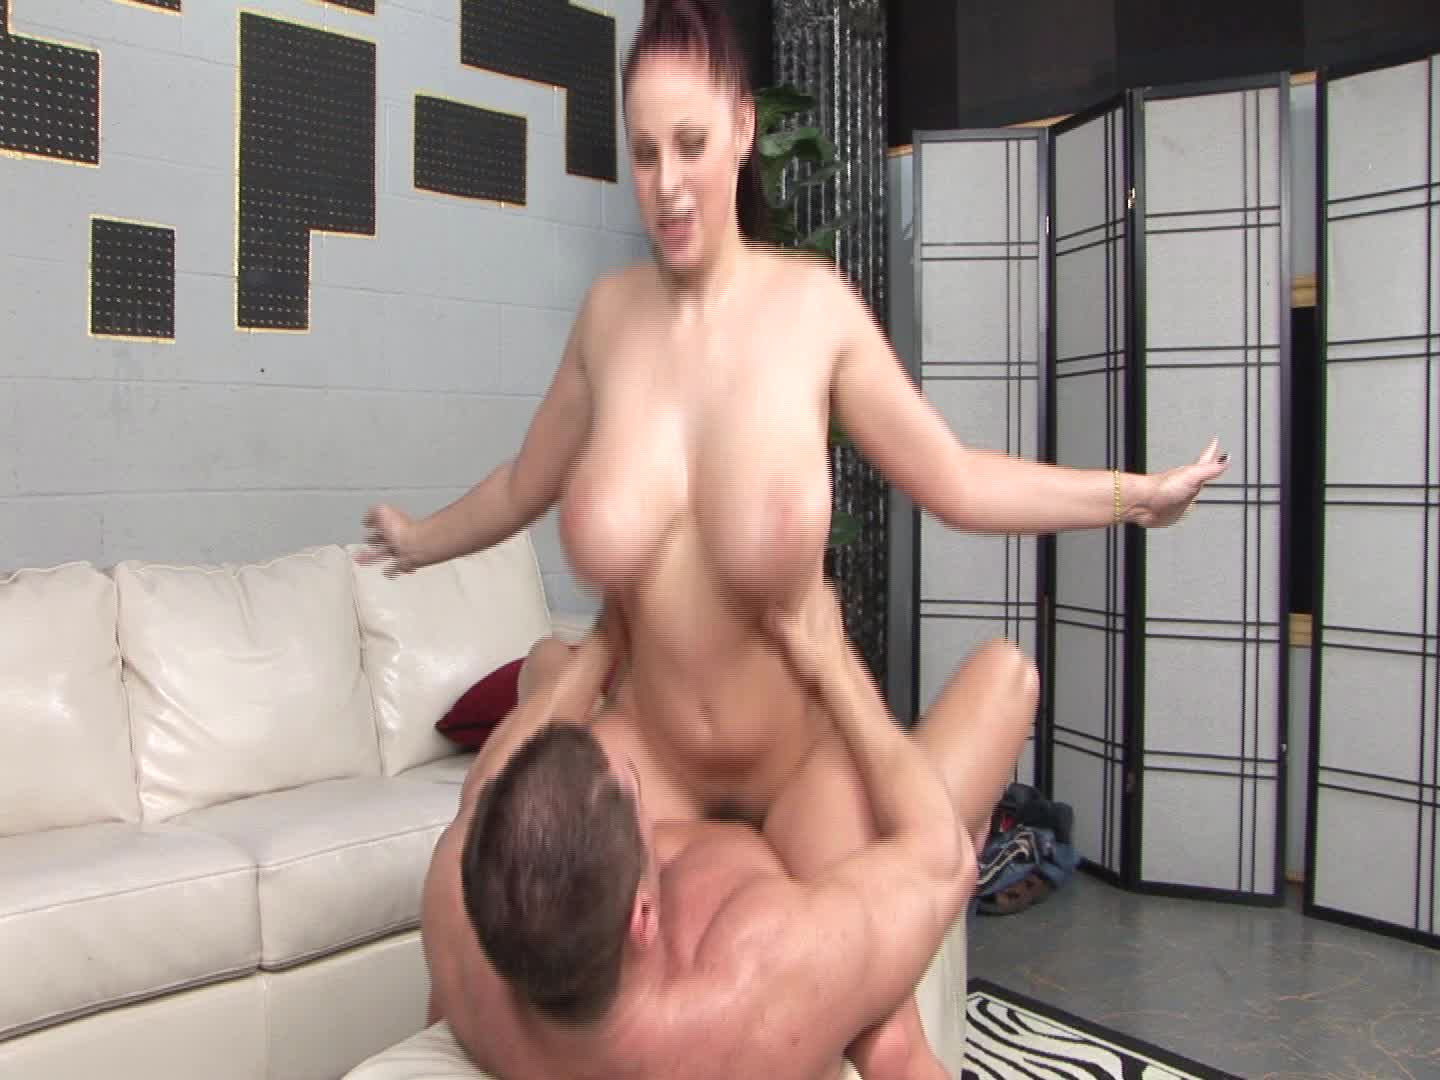 Gianna michaels ride cock bounce